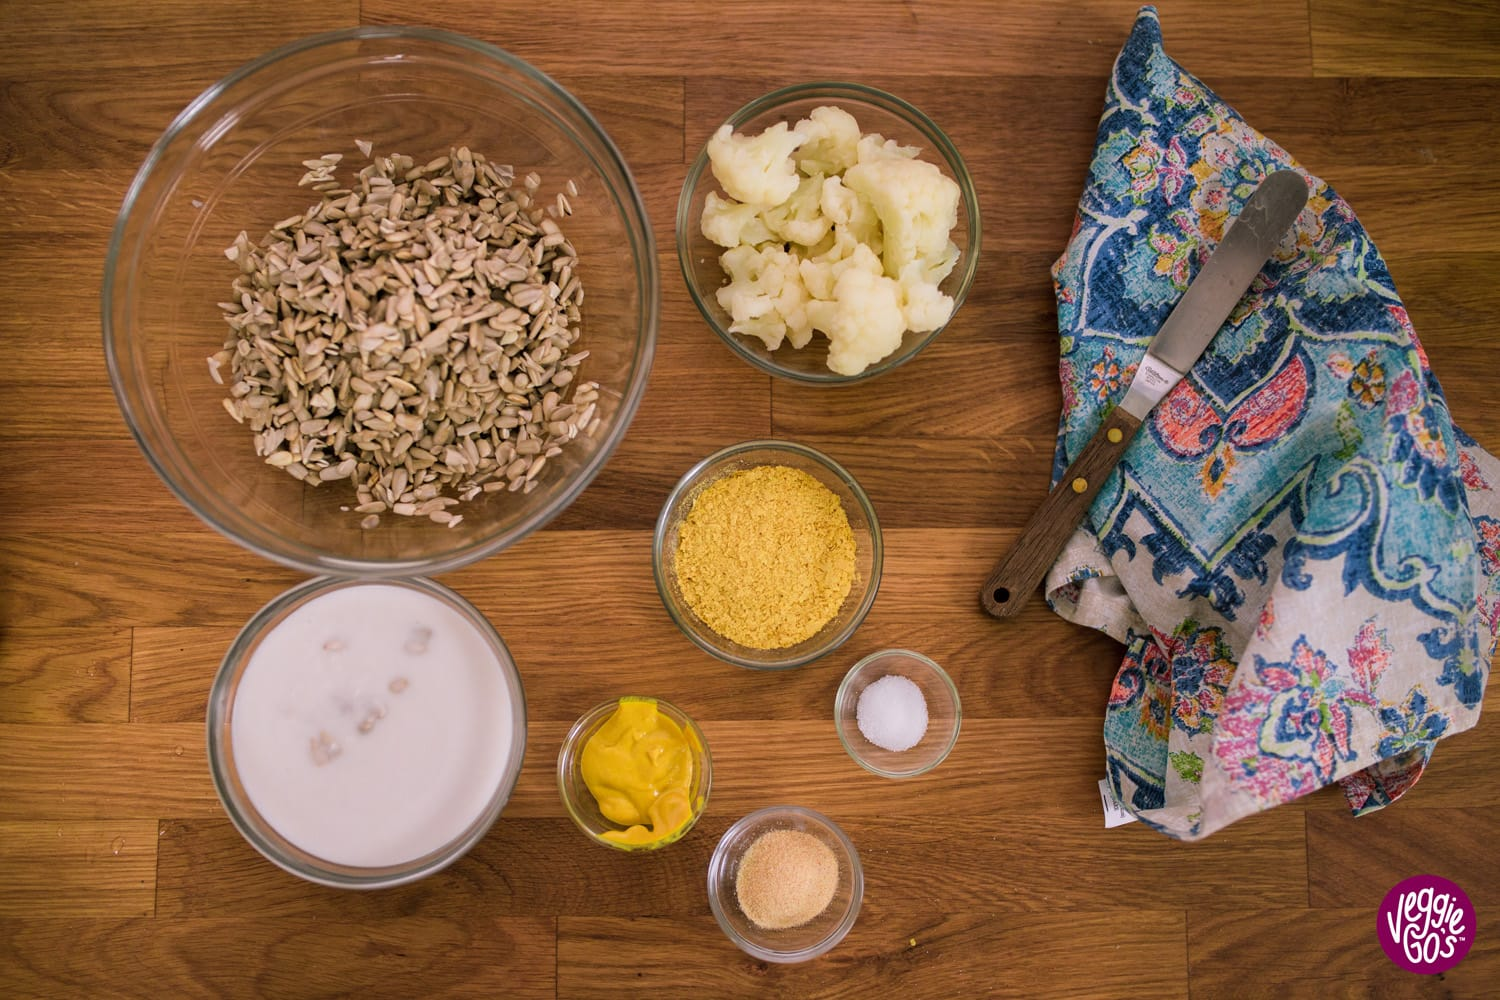 ingredients for cheeze sauce